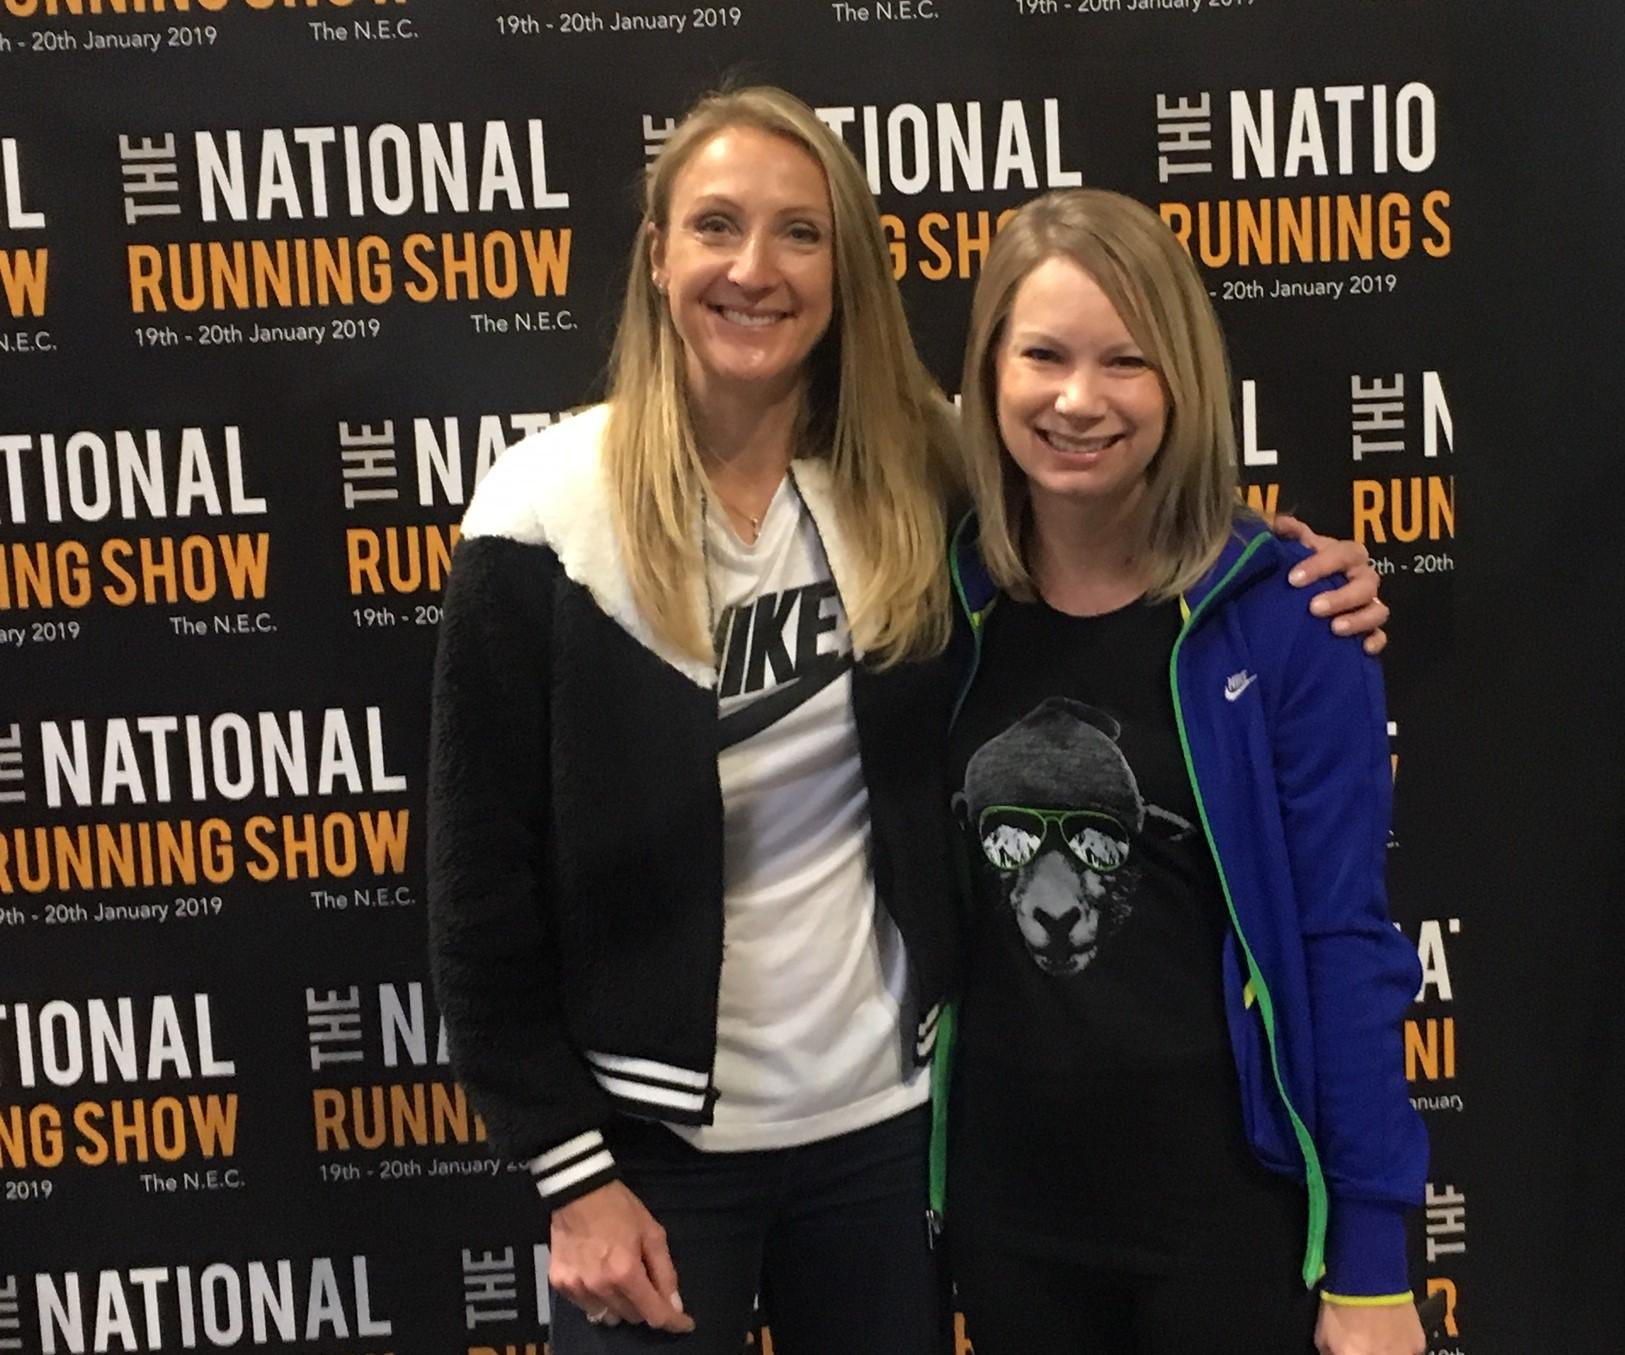 Paula Radcliffe at National Running Show 2019